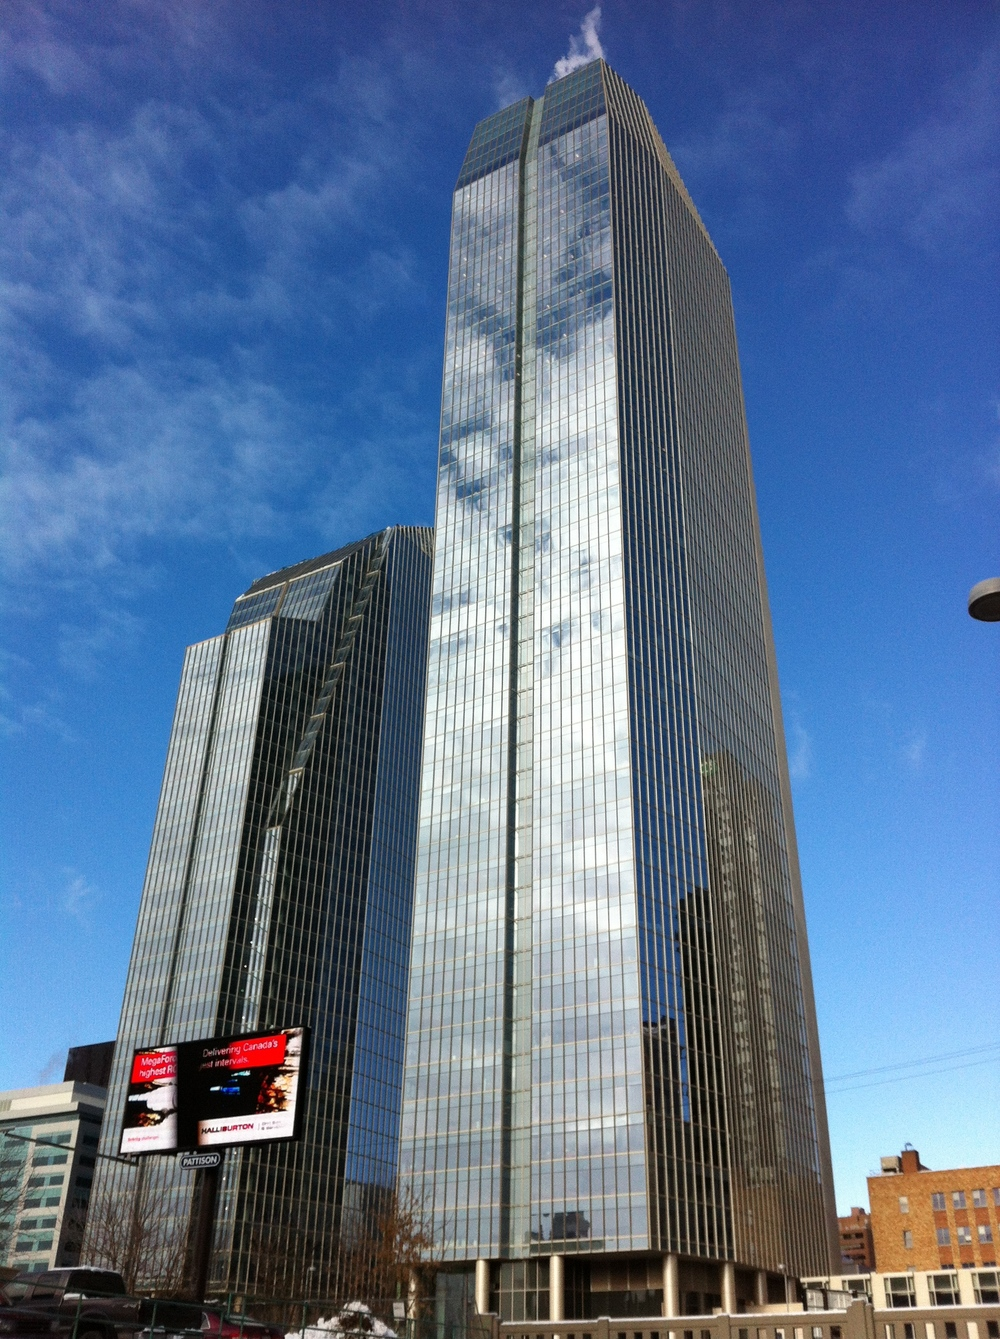 Eight Avenue Place is one of several new major office towers constructed in downtown Calgary over the past five years.